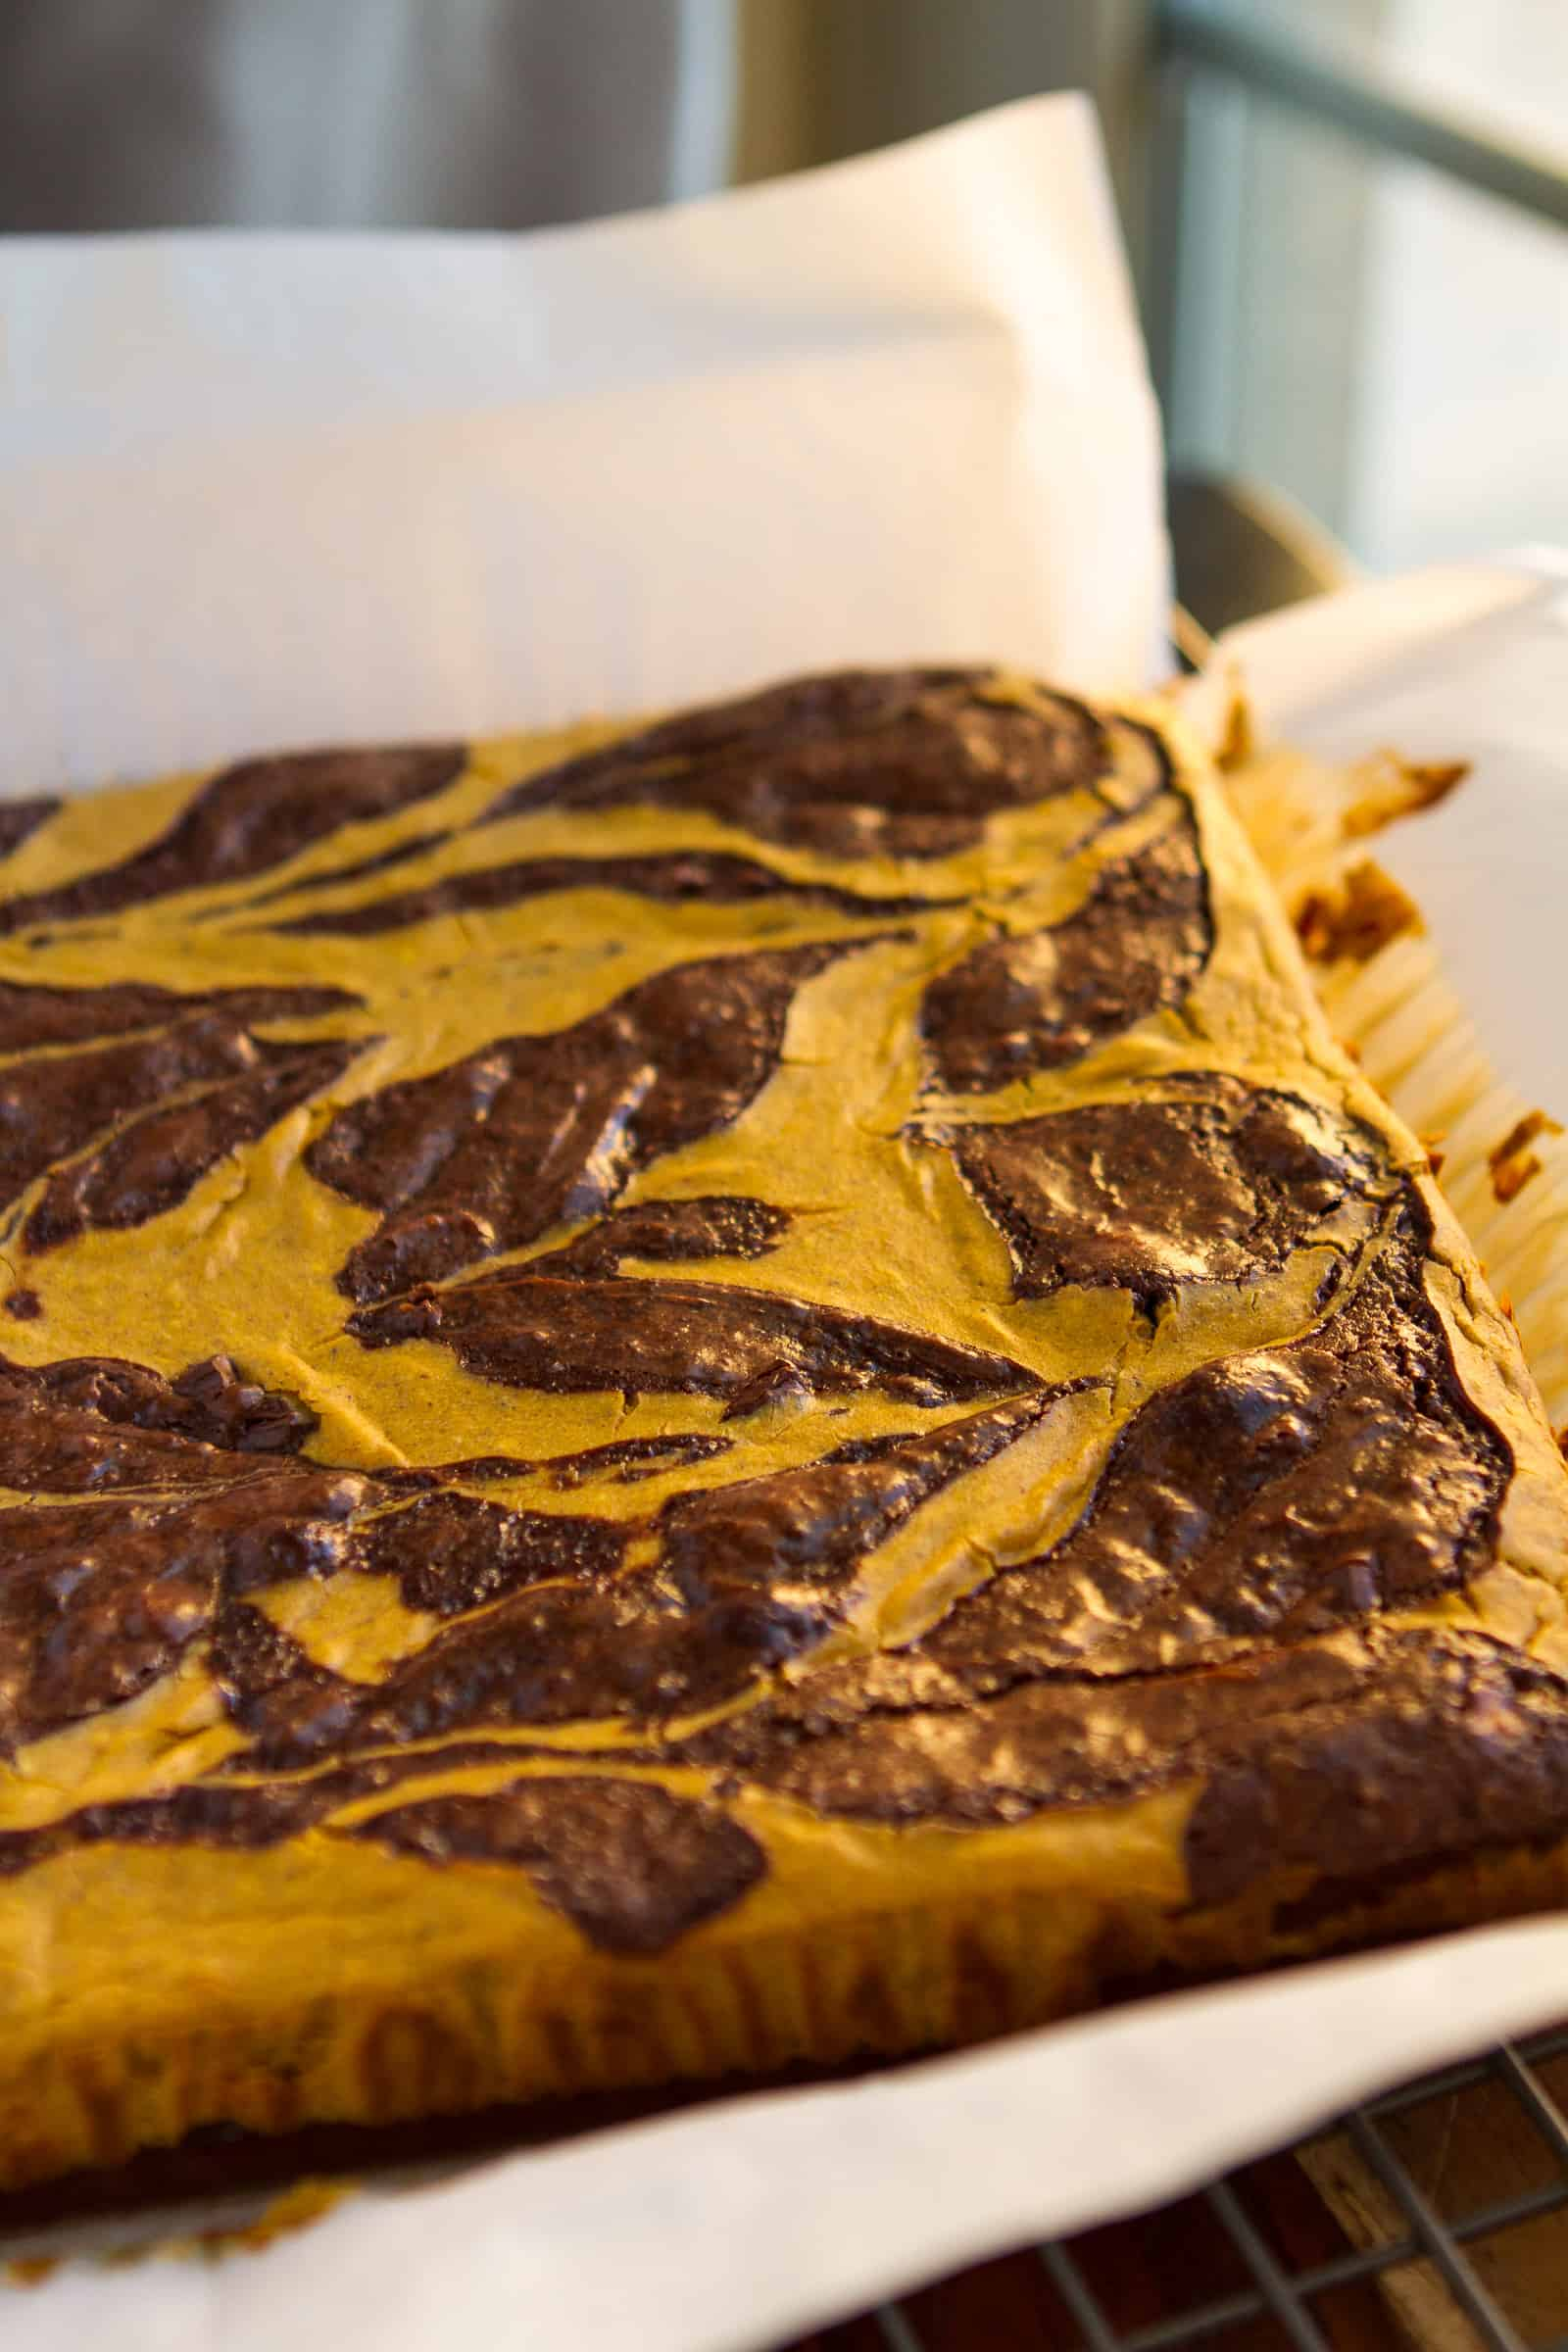 Pumpkin Swirl Brownies -- a pumpkin cheesecake mixture swirled into a rich and fudgy brownies batter makes these amazing brownies extra decadent... You'll definitely want a tall glass of milk with them! | via @unsophisticook on unsophisticook.com